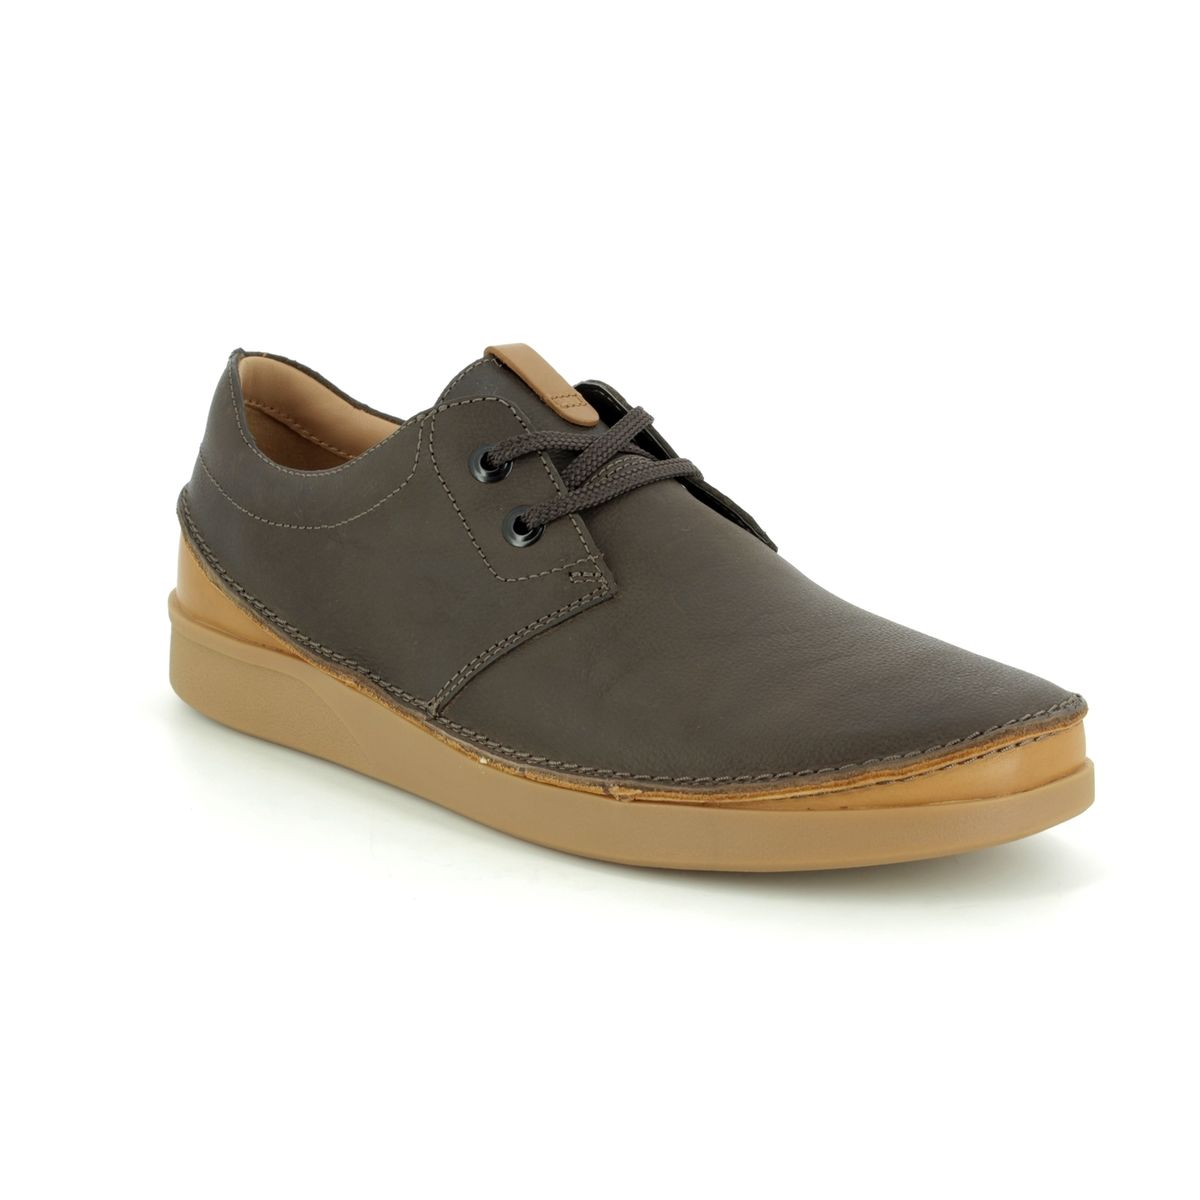 046aea55b19 Clarks Casual Shoes - Brown leather - 353937G OAKLAND LACE